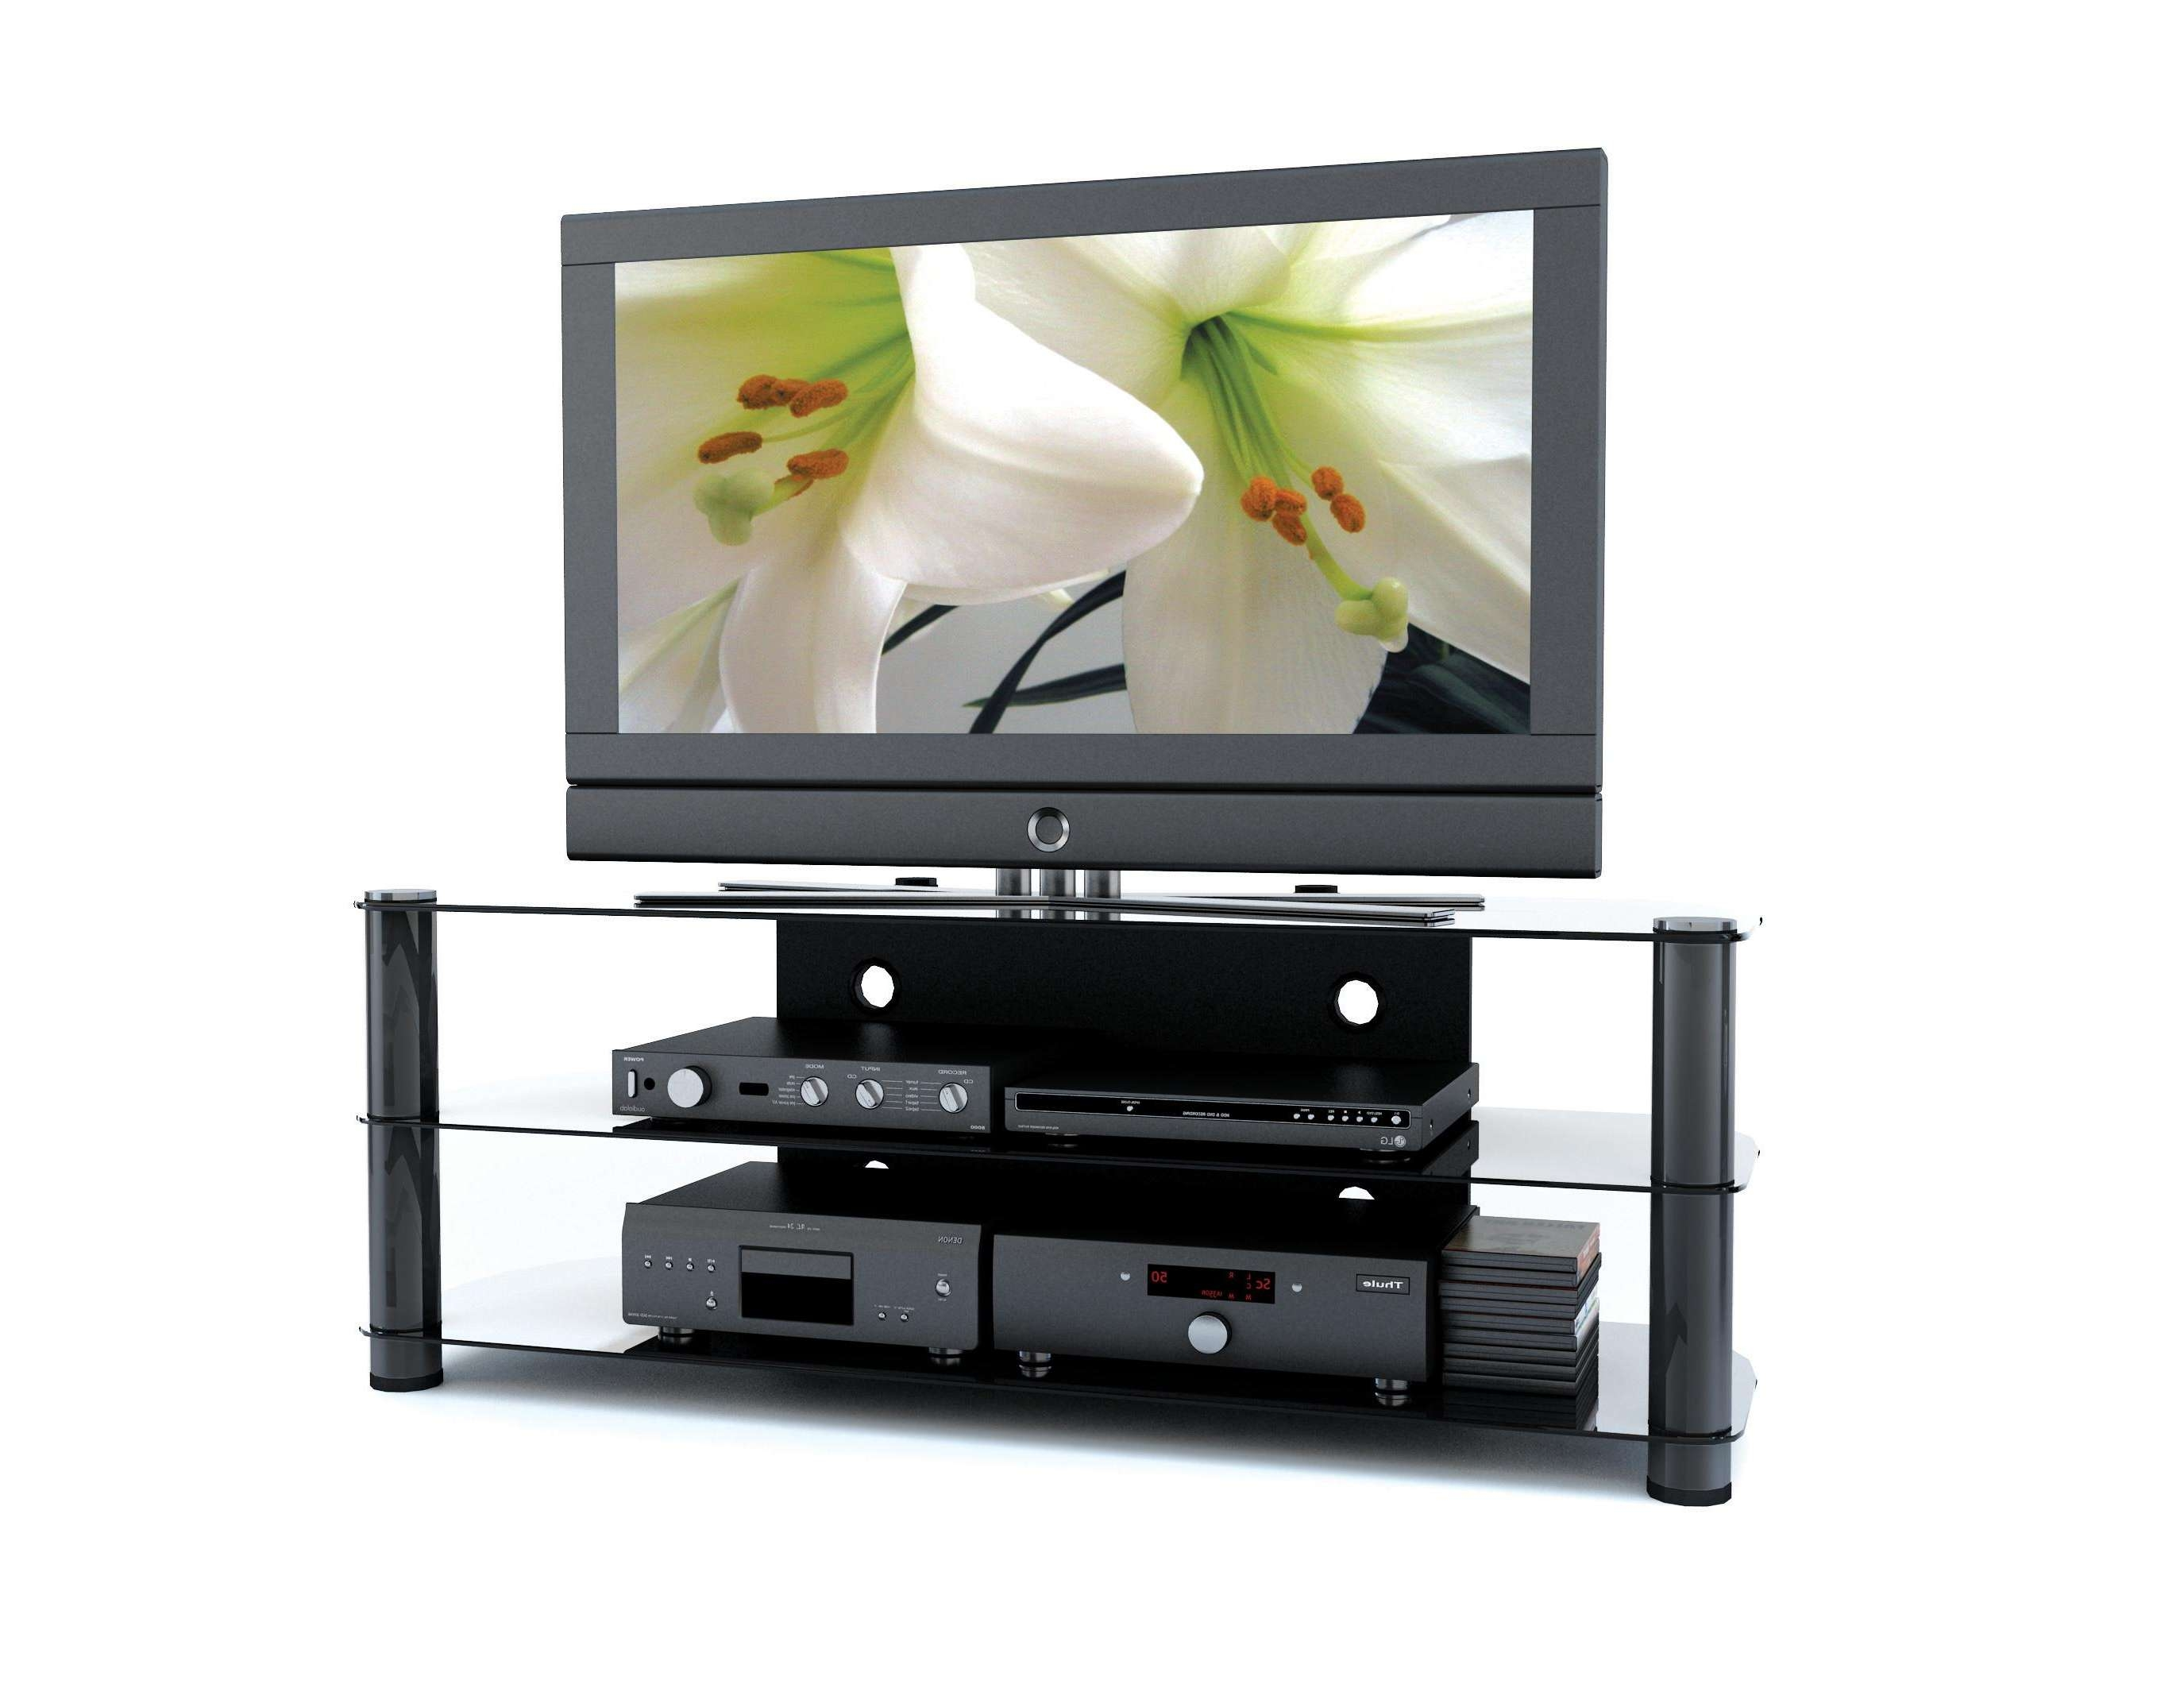 Inch Tv Stand With Modern Glass Flat Screen Decoration Furniture Throughout Modern Glass Tv Stands (View 15 of 15)